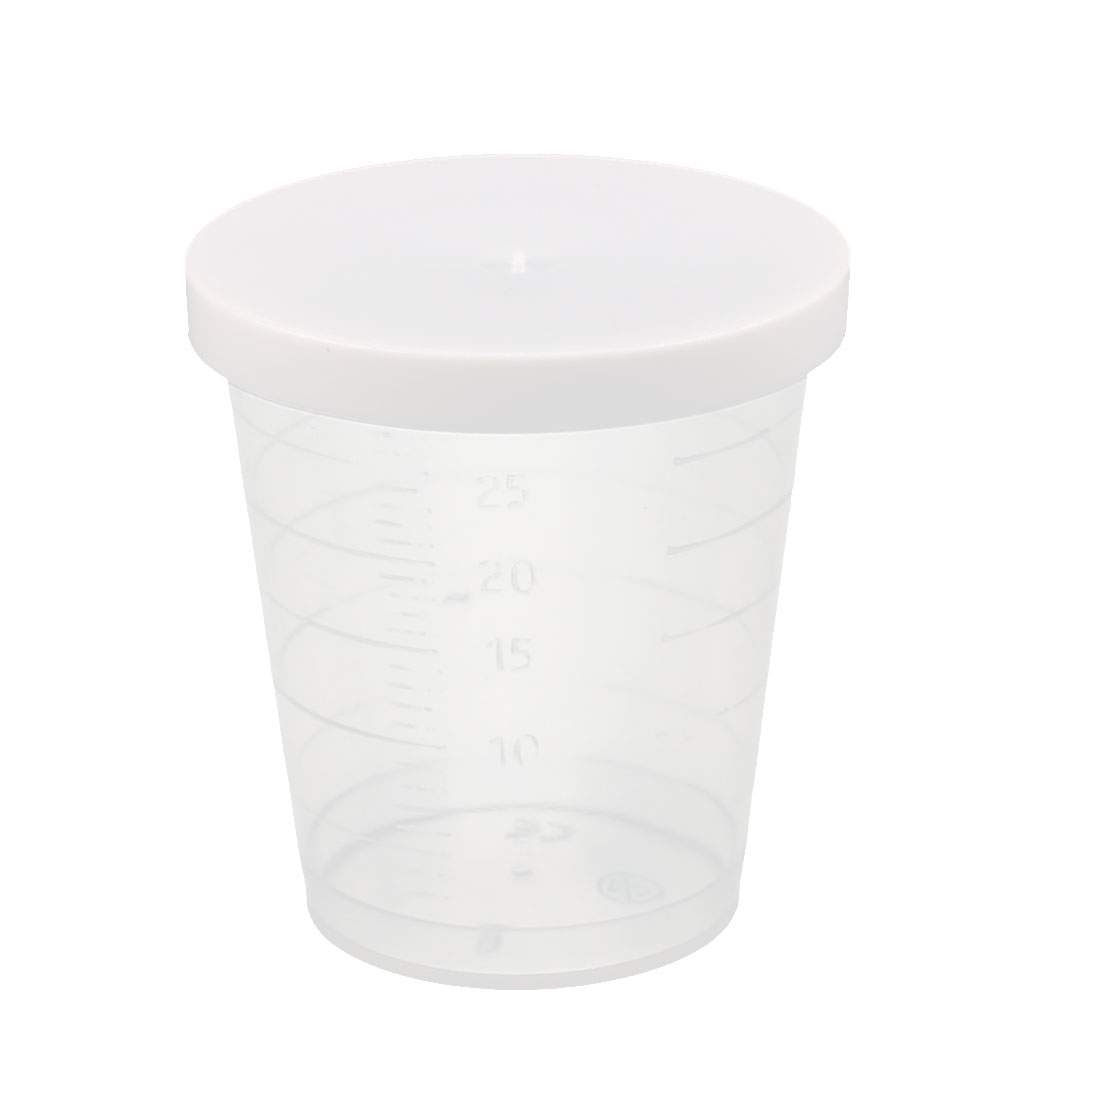 2 Pcs 30mL Laboratory Transparent Plastic Liquid Container Measuring Cup Beaker by Unique-Bargains